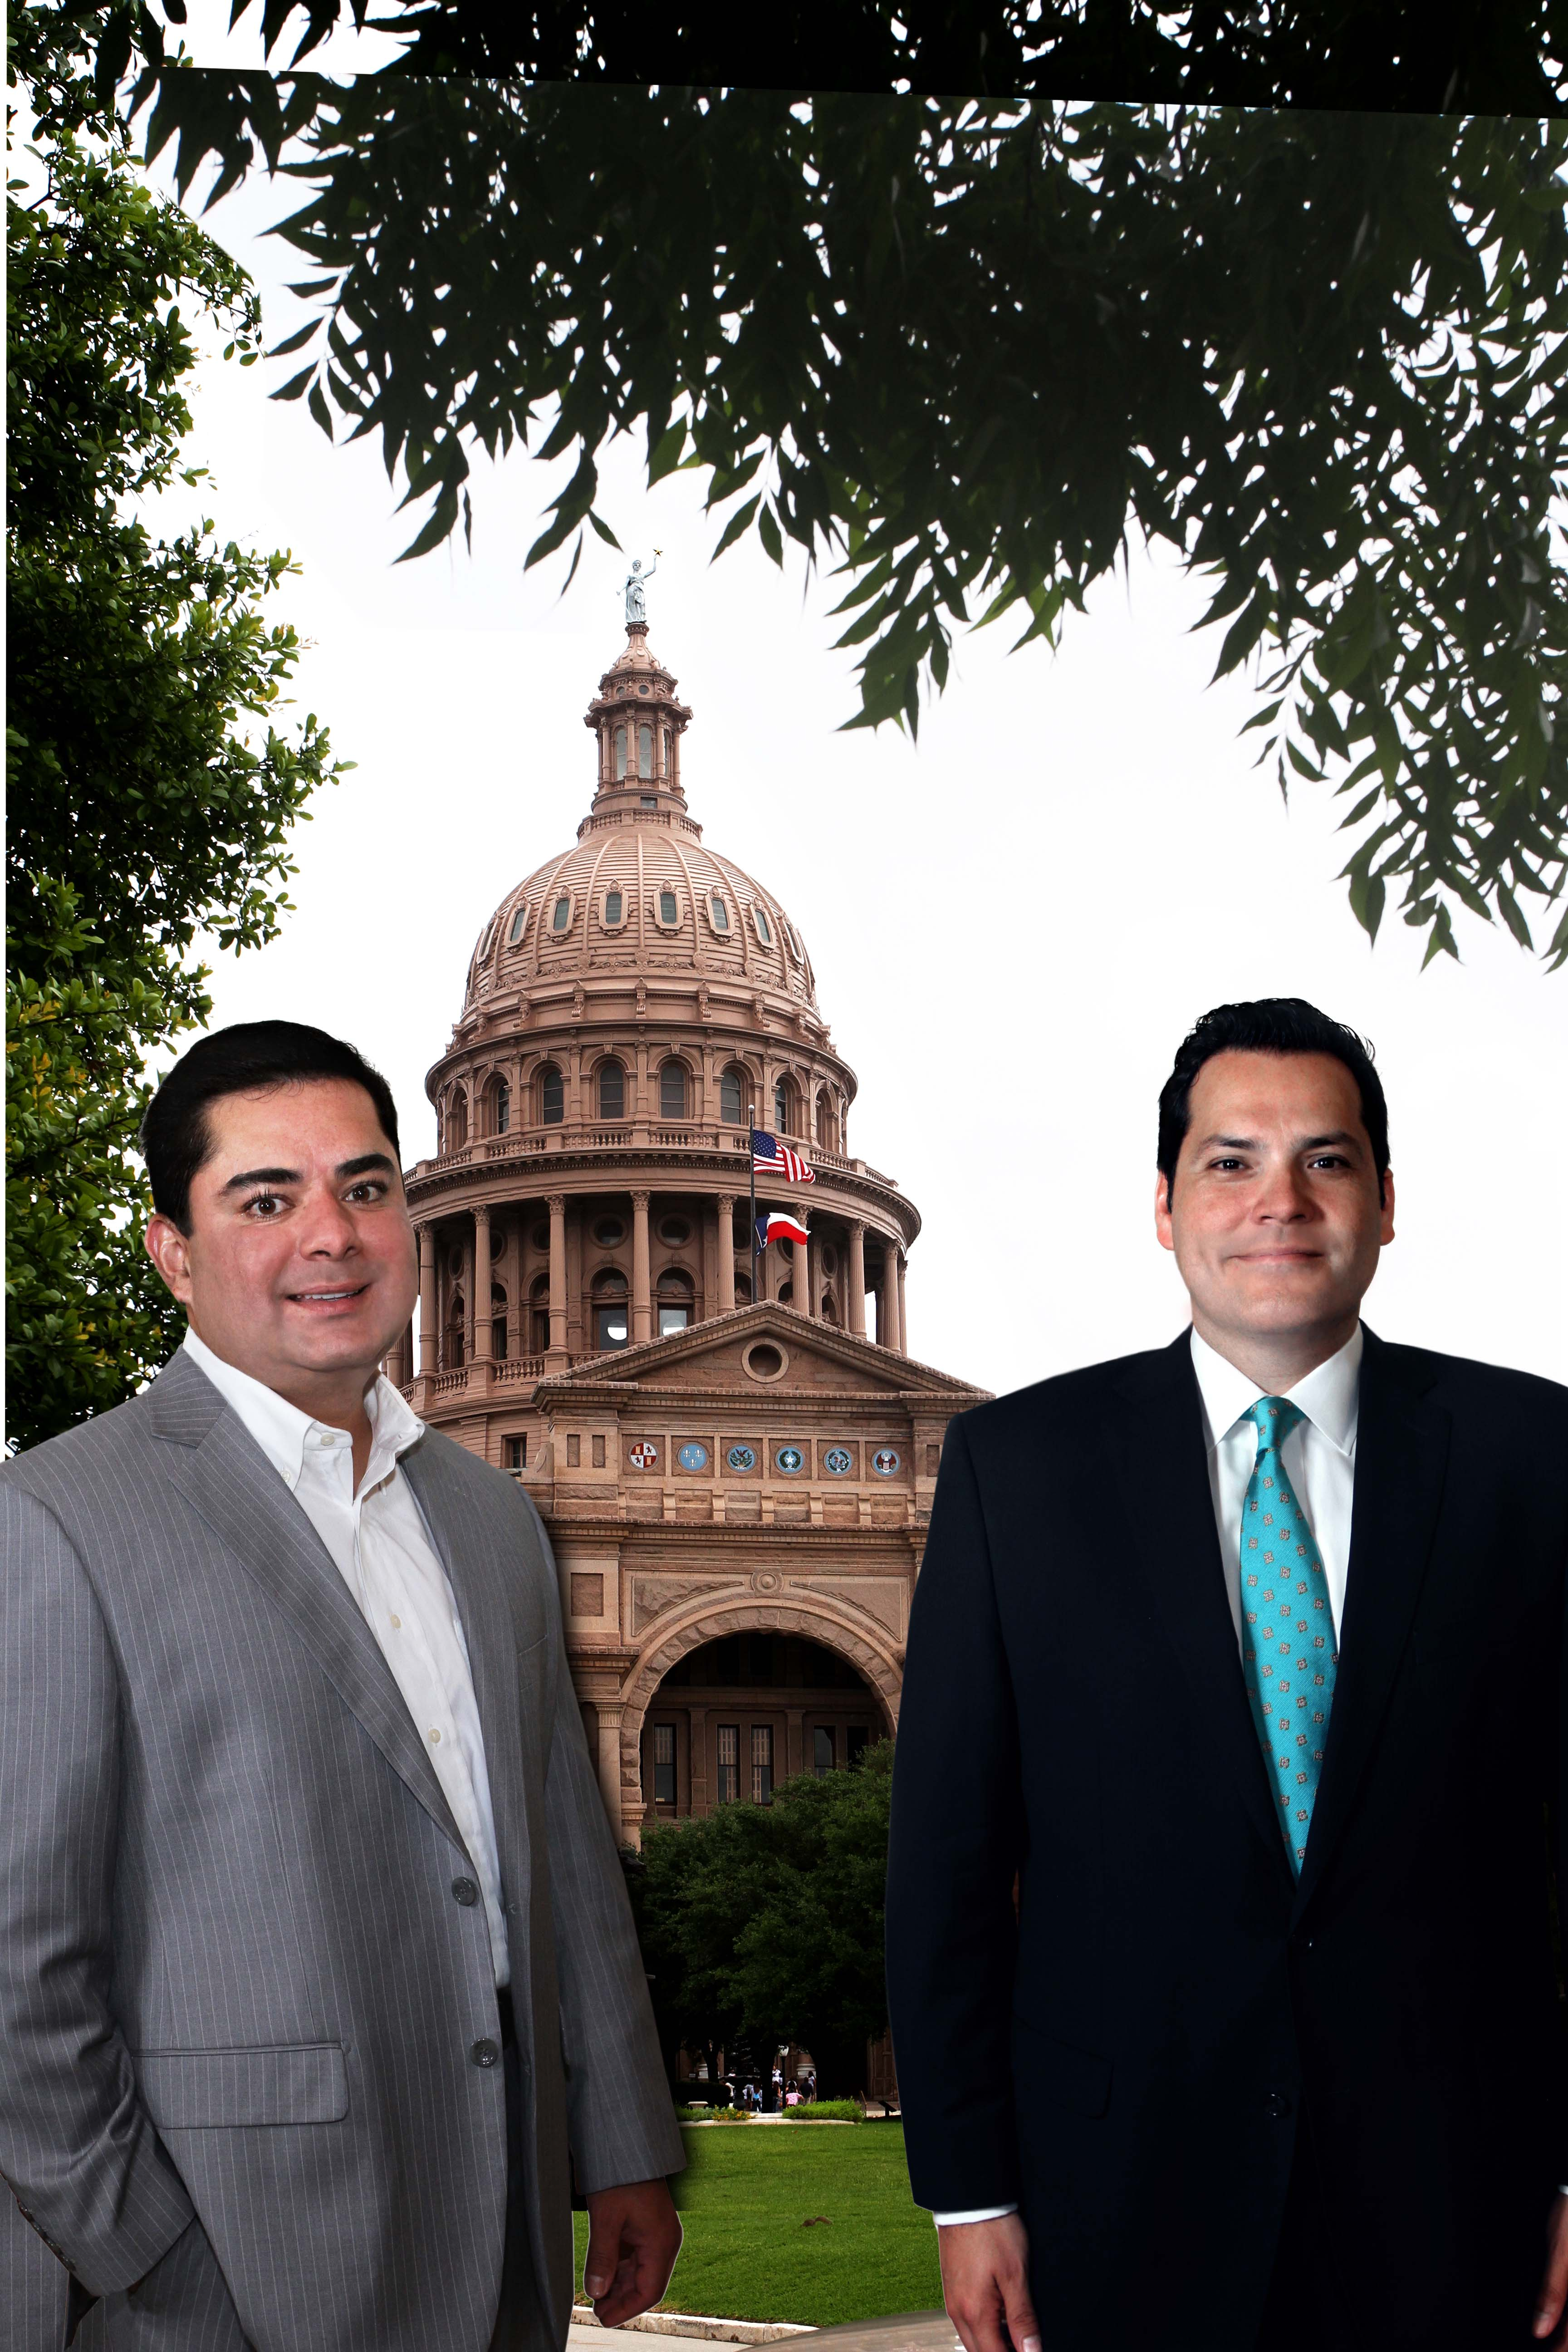 Texas State Representatives live the Mission of service